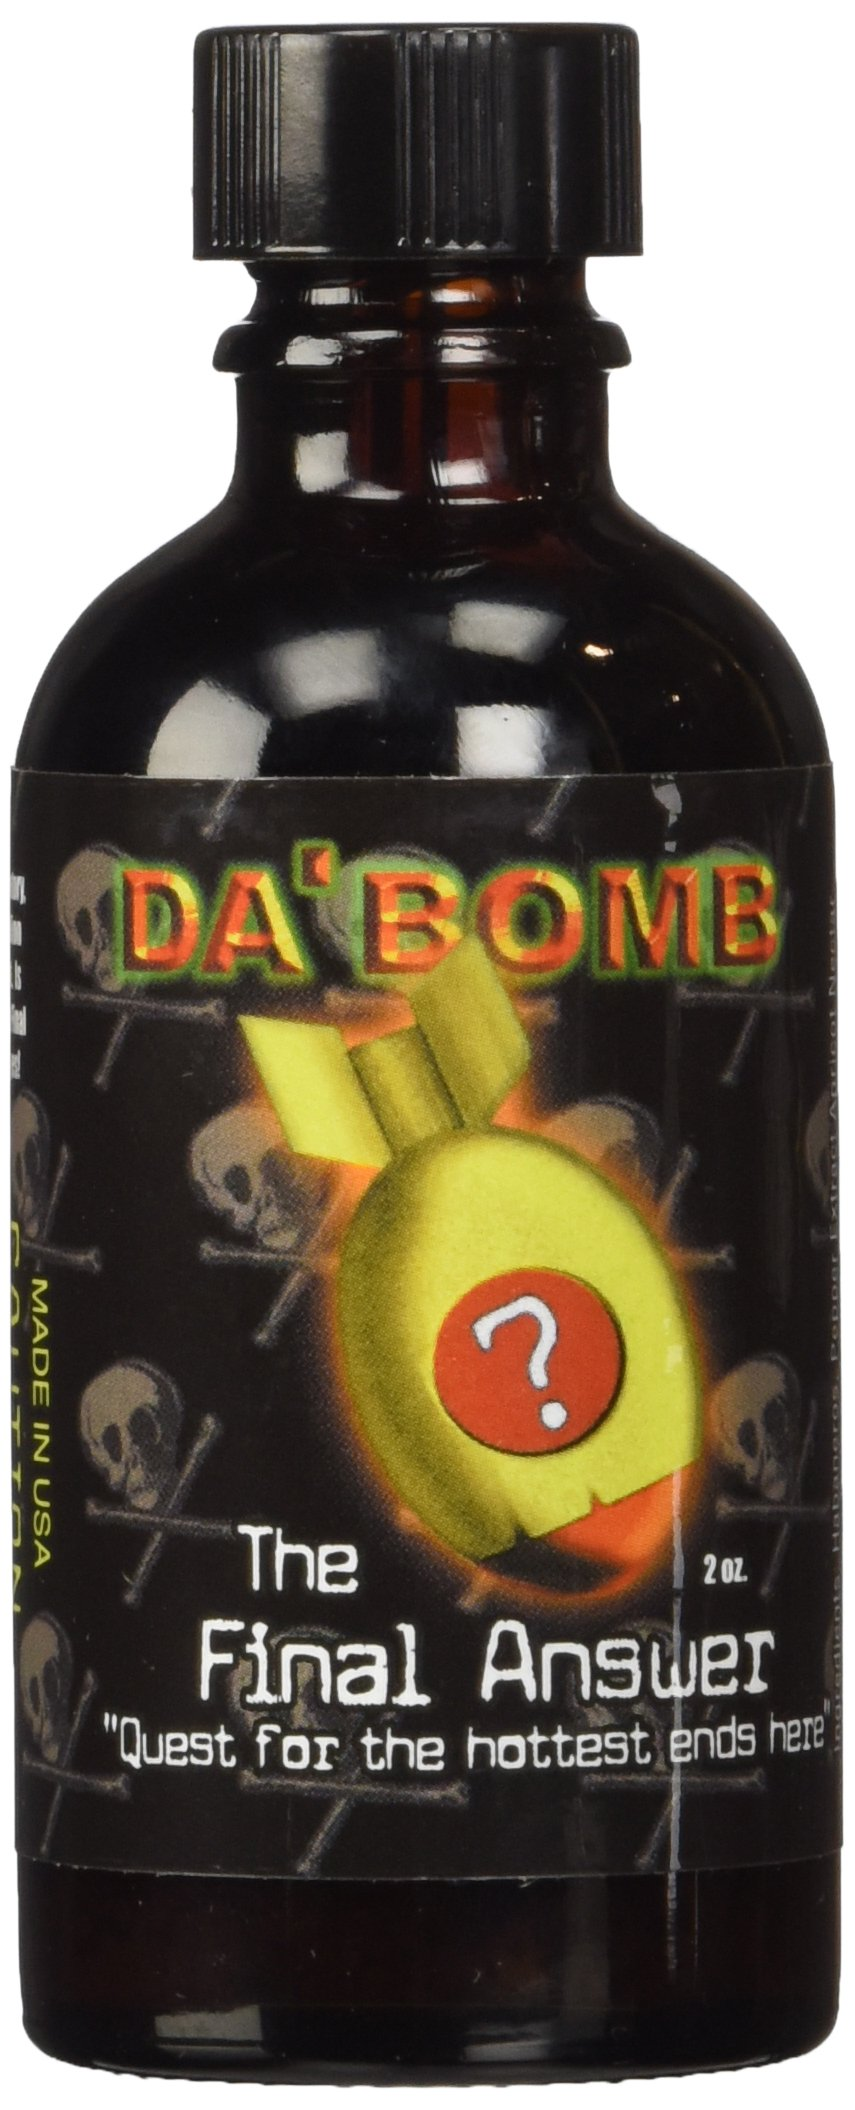 Da Bomb The Final Answer Hot Sauce 7af1b06996064